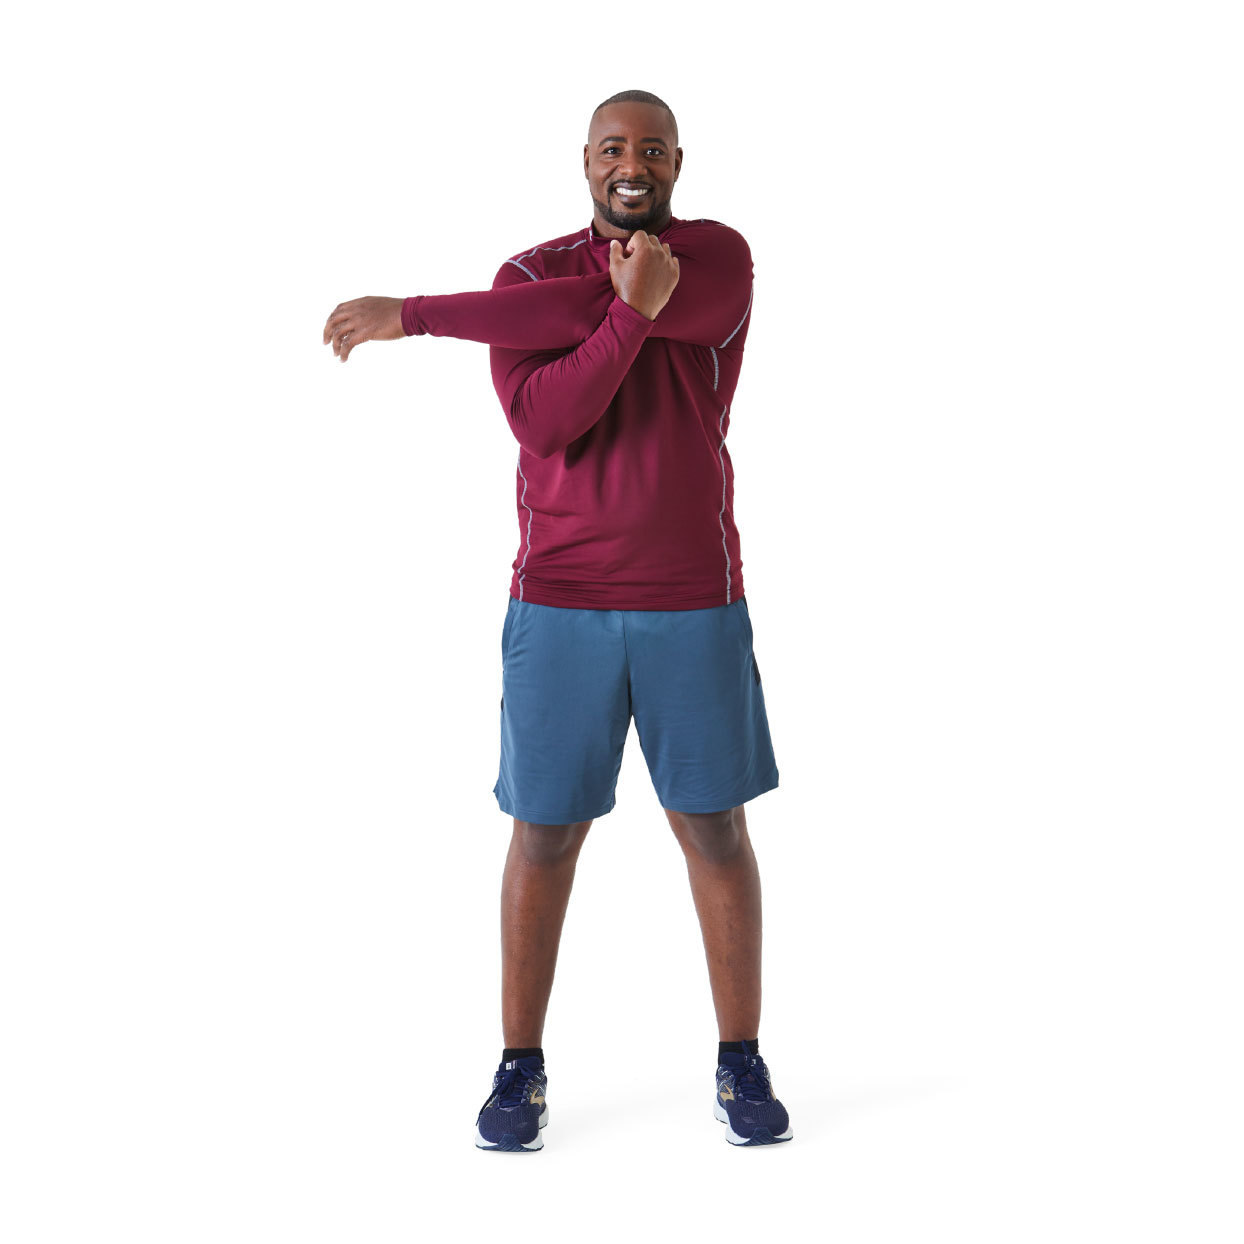 15-Minute Strength Workout for Diabetes